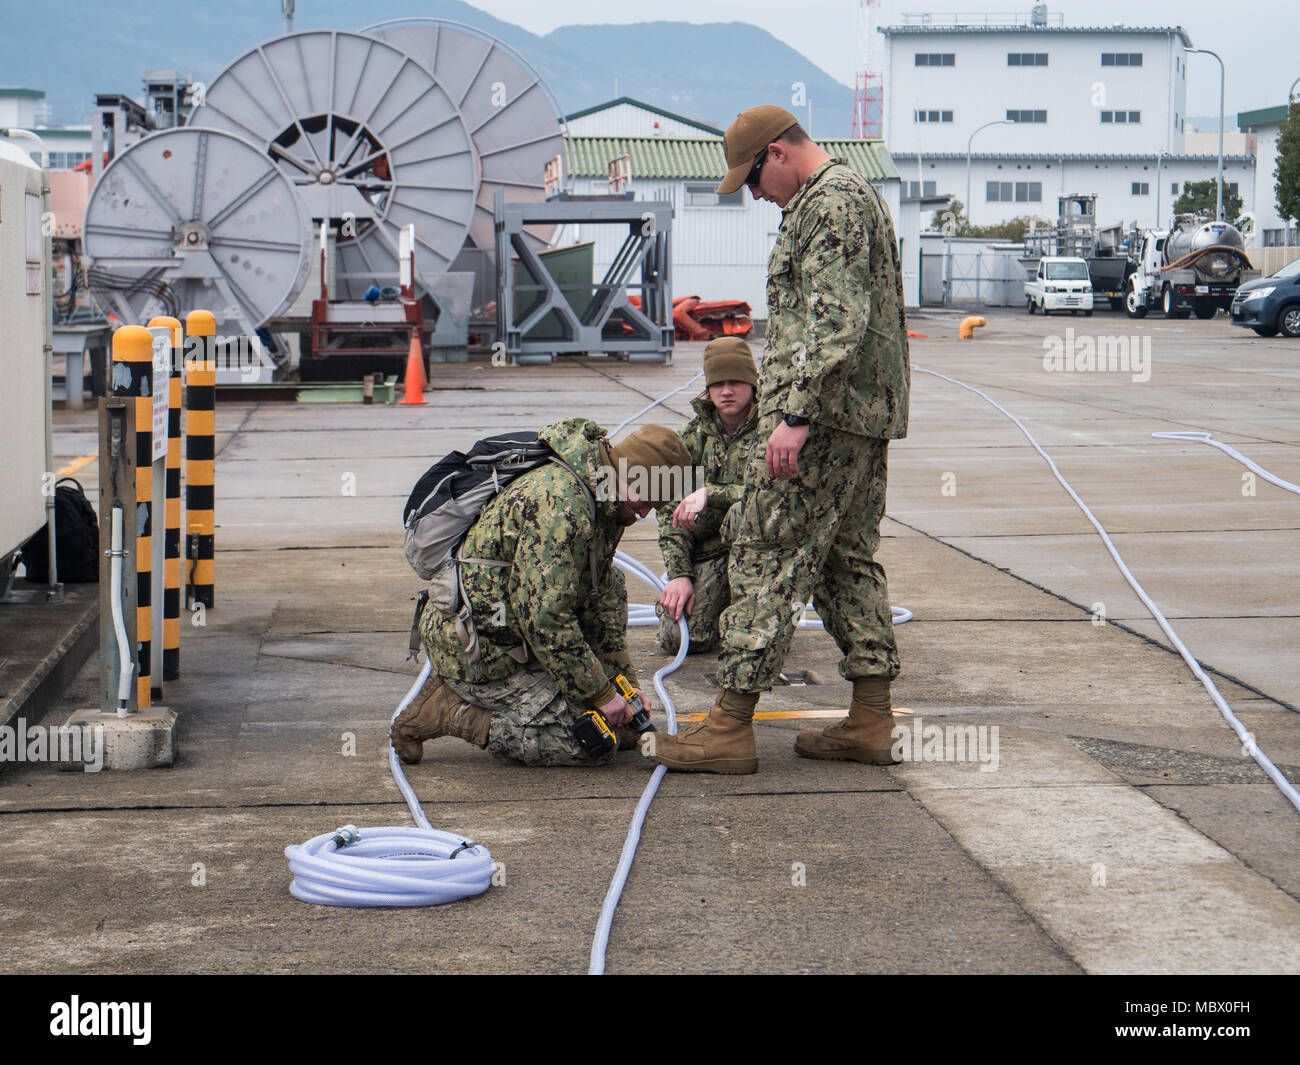 U.S. Navy Seabees, assigned to Underwater Construction Team (UCT) 2, make a bubble curtain at Commander, Fleet Activities Sasebo (CFAS), Jan. 15, 2018. UCT-2 provides construction, inspection, maintenance, and repair of underwater and waterfront facilities in support of the Pacific Fleet. (U.S. Navy Combat Camera photo by Mass Communications Specialist 1st Class Arthurgwain L. Marquez) Stock Photo